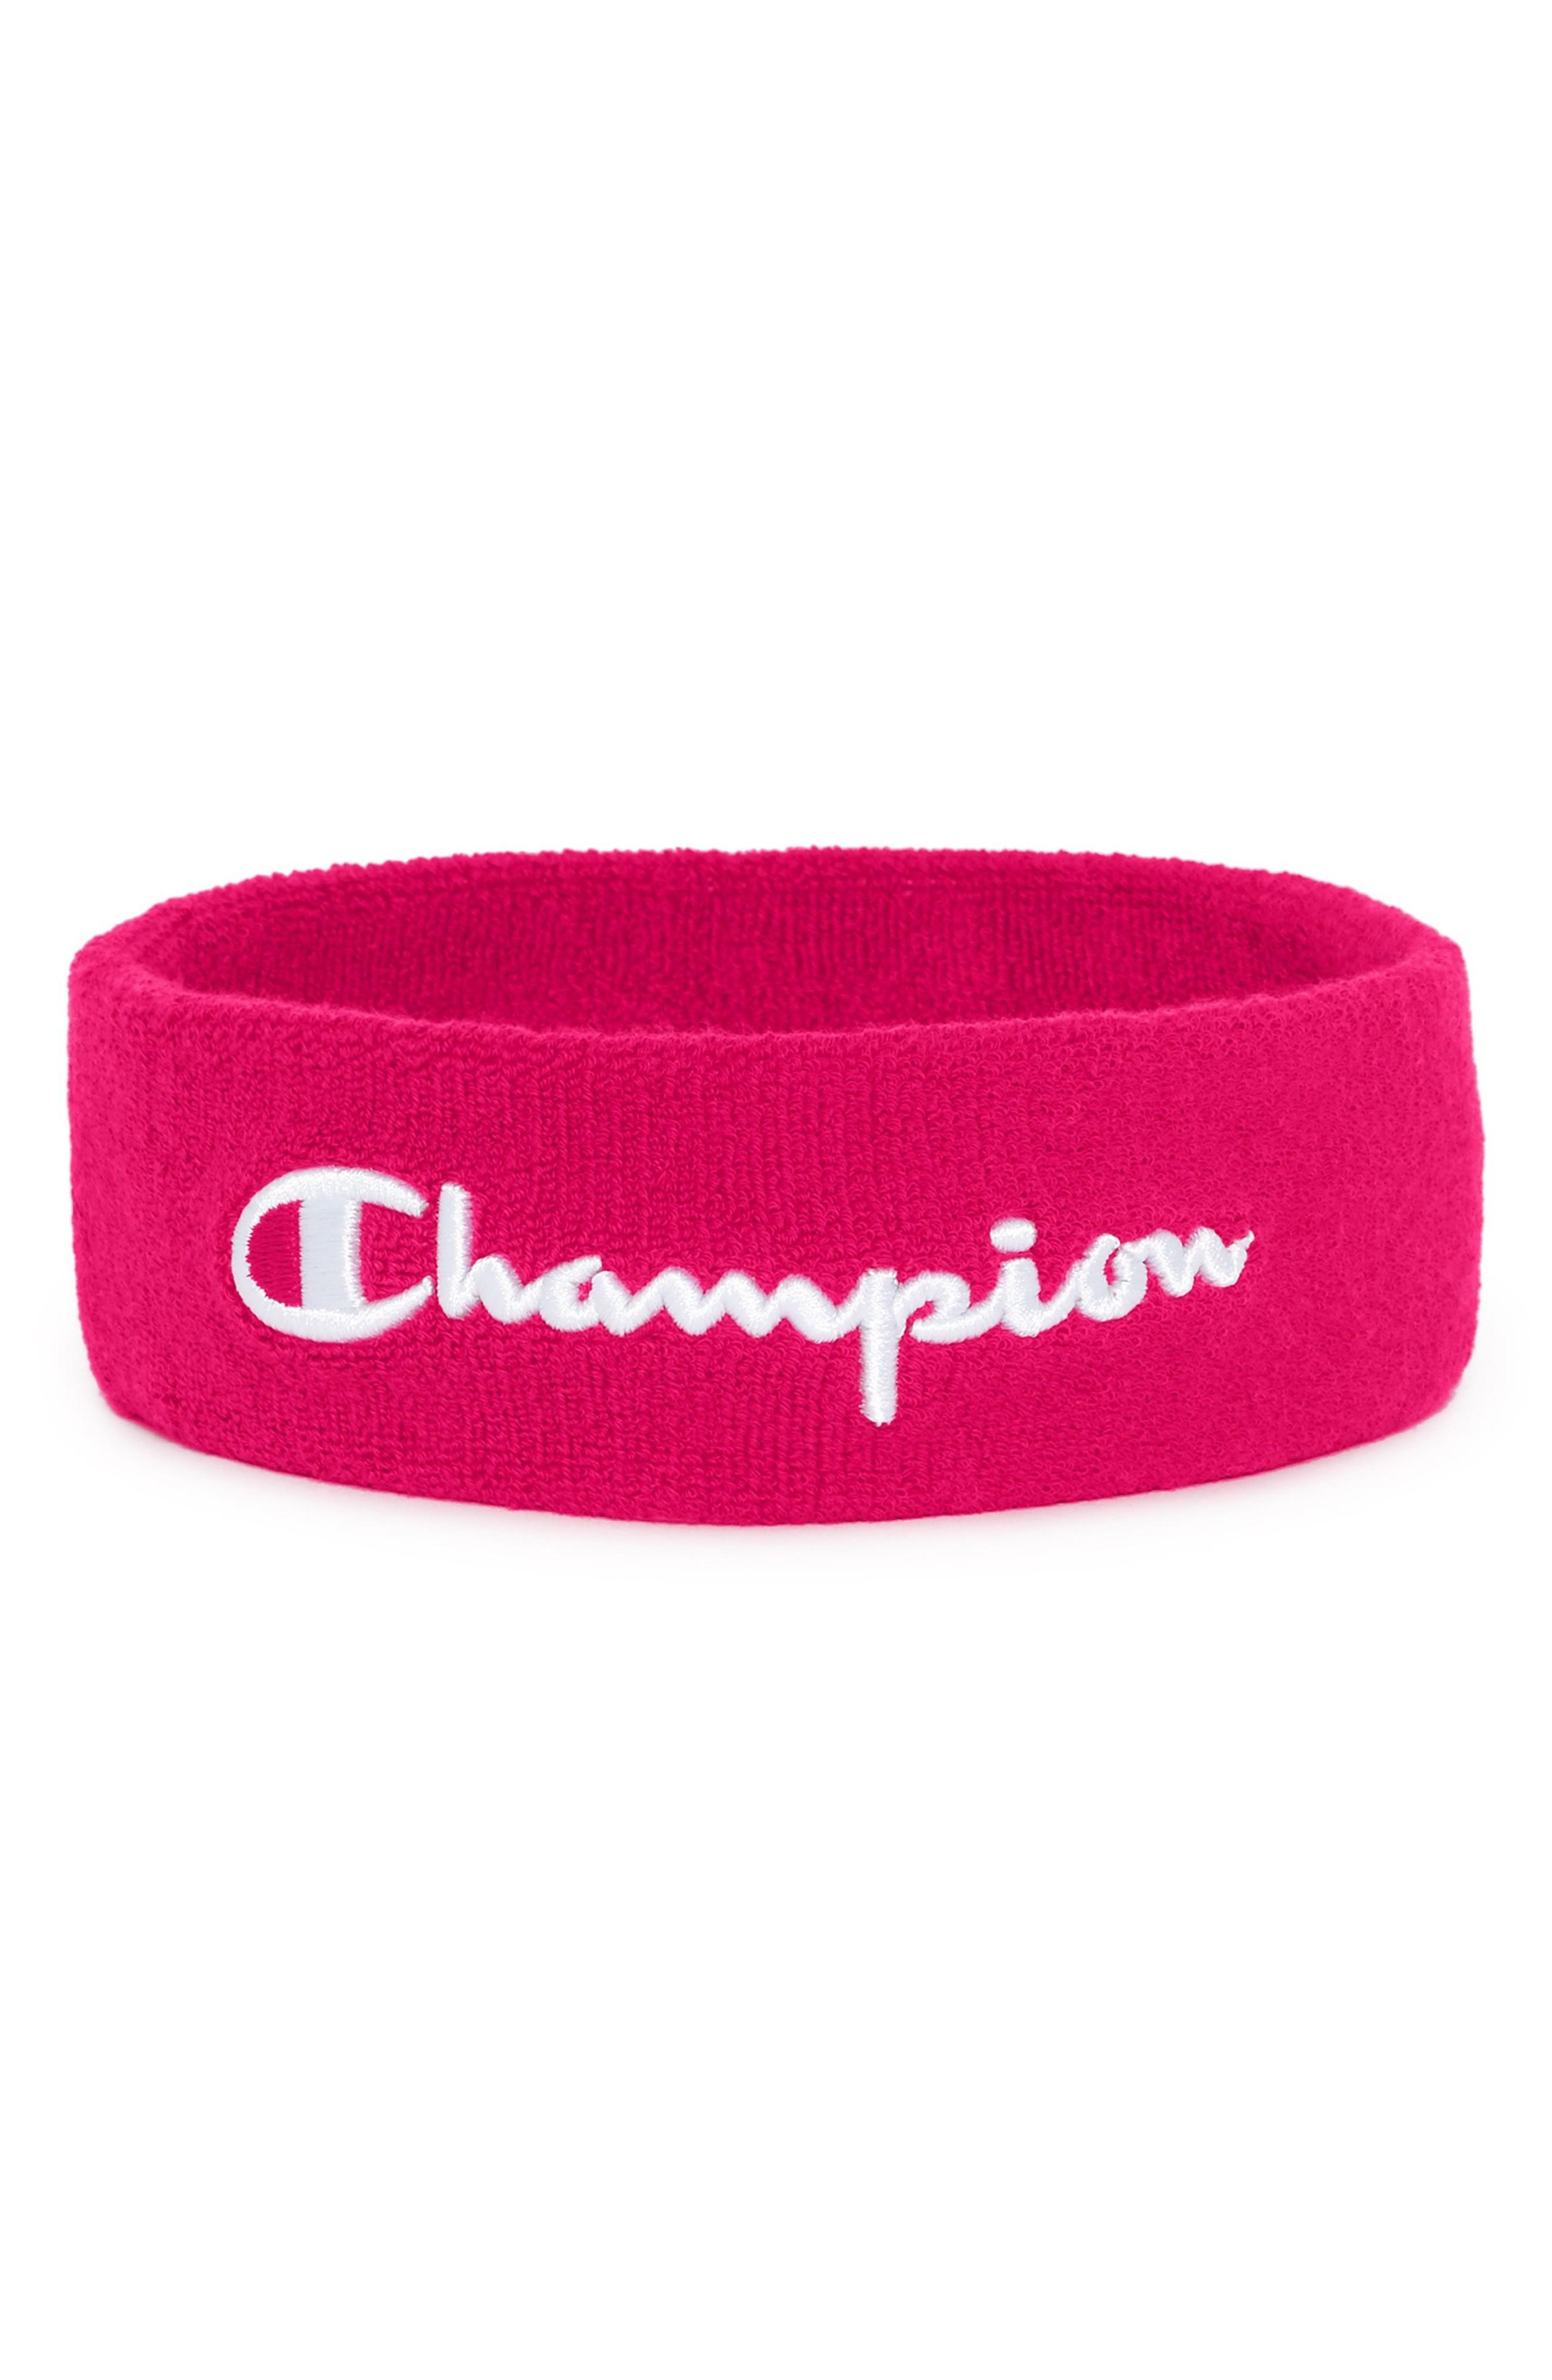 1090a9a43d4a A bold logo brands a must-have sweatband made of soft cotton terry for a  comfortable fit and drier workouts. Style Name  Champion Terry Logo  Sweatband.